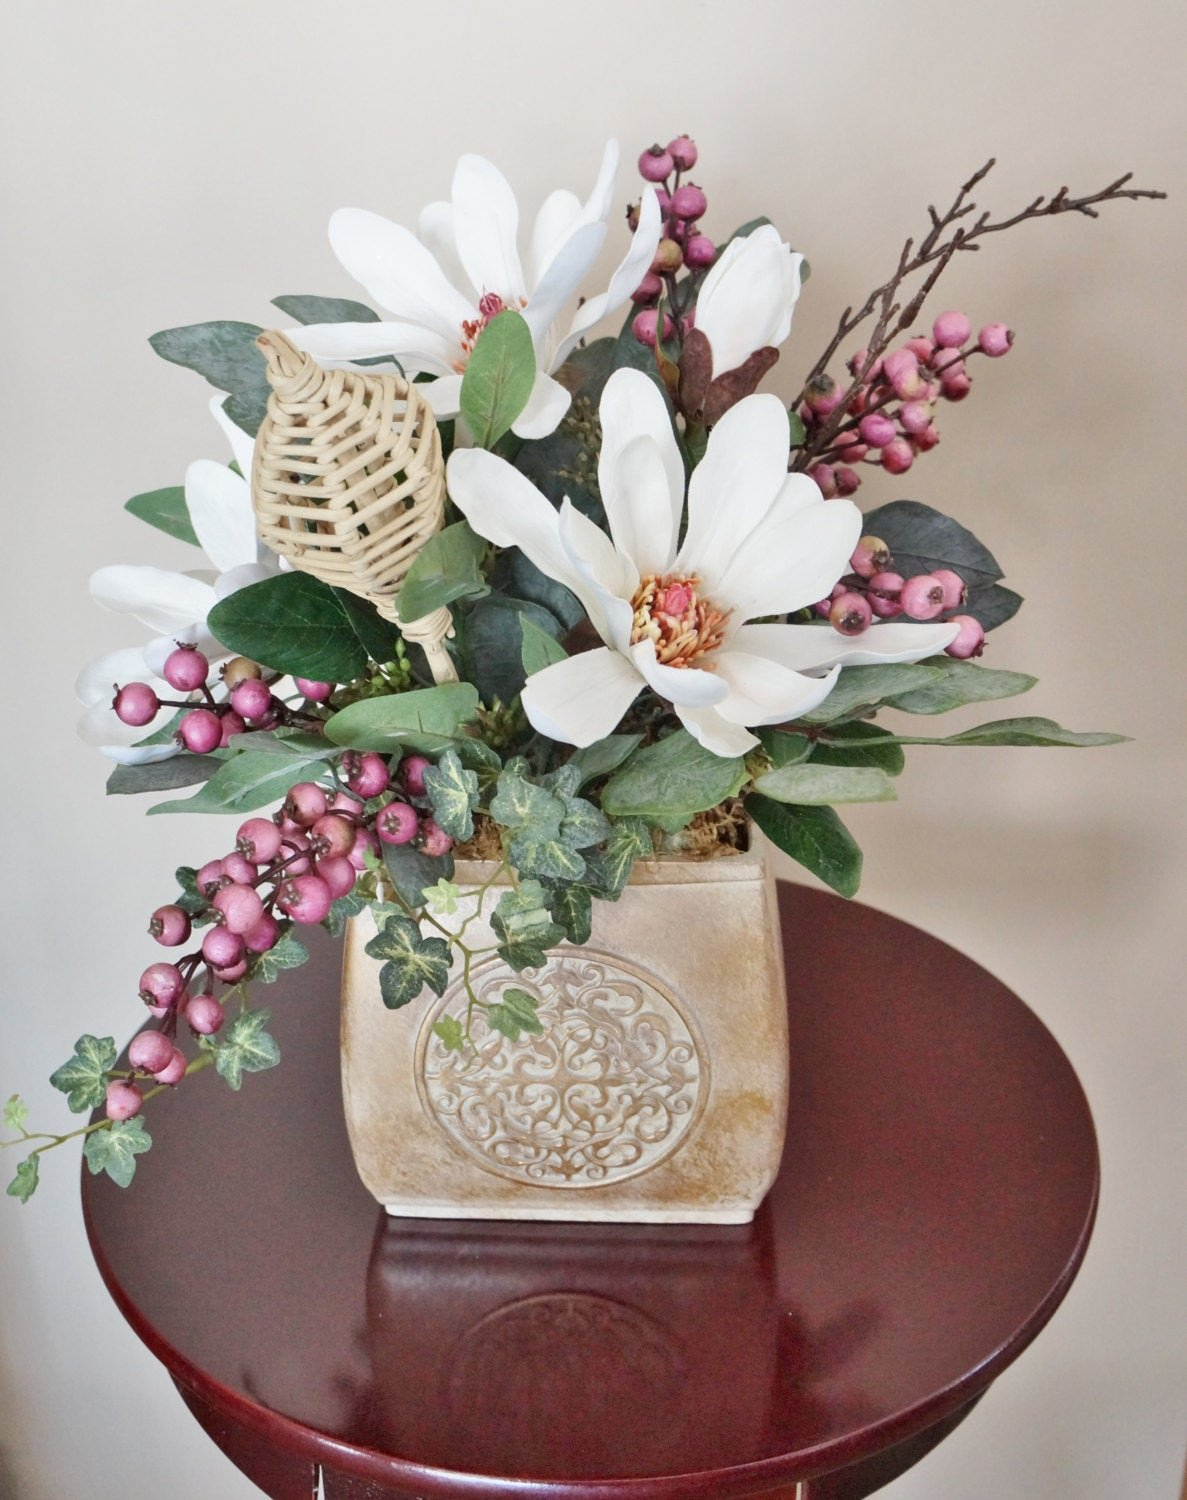 Flower Arrangements for Home Decor New Flower Arrangement Home Decor Magnolias Magnolia